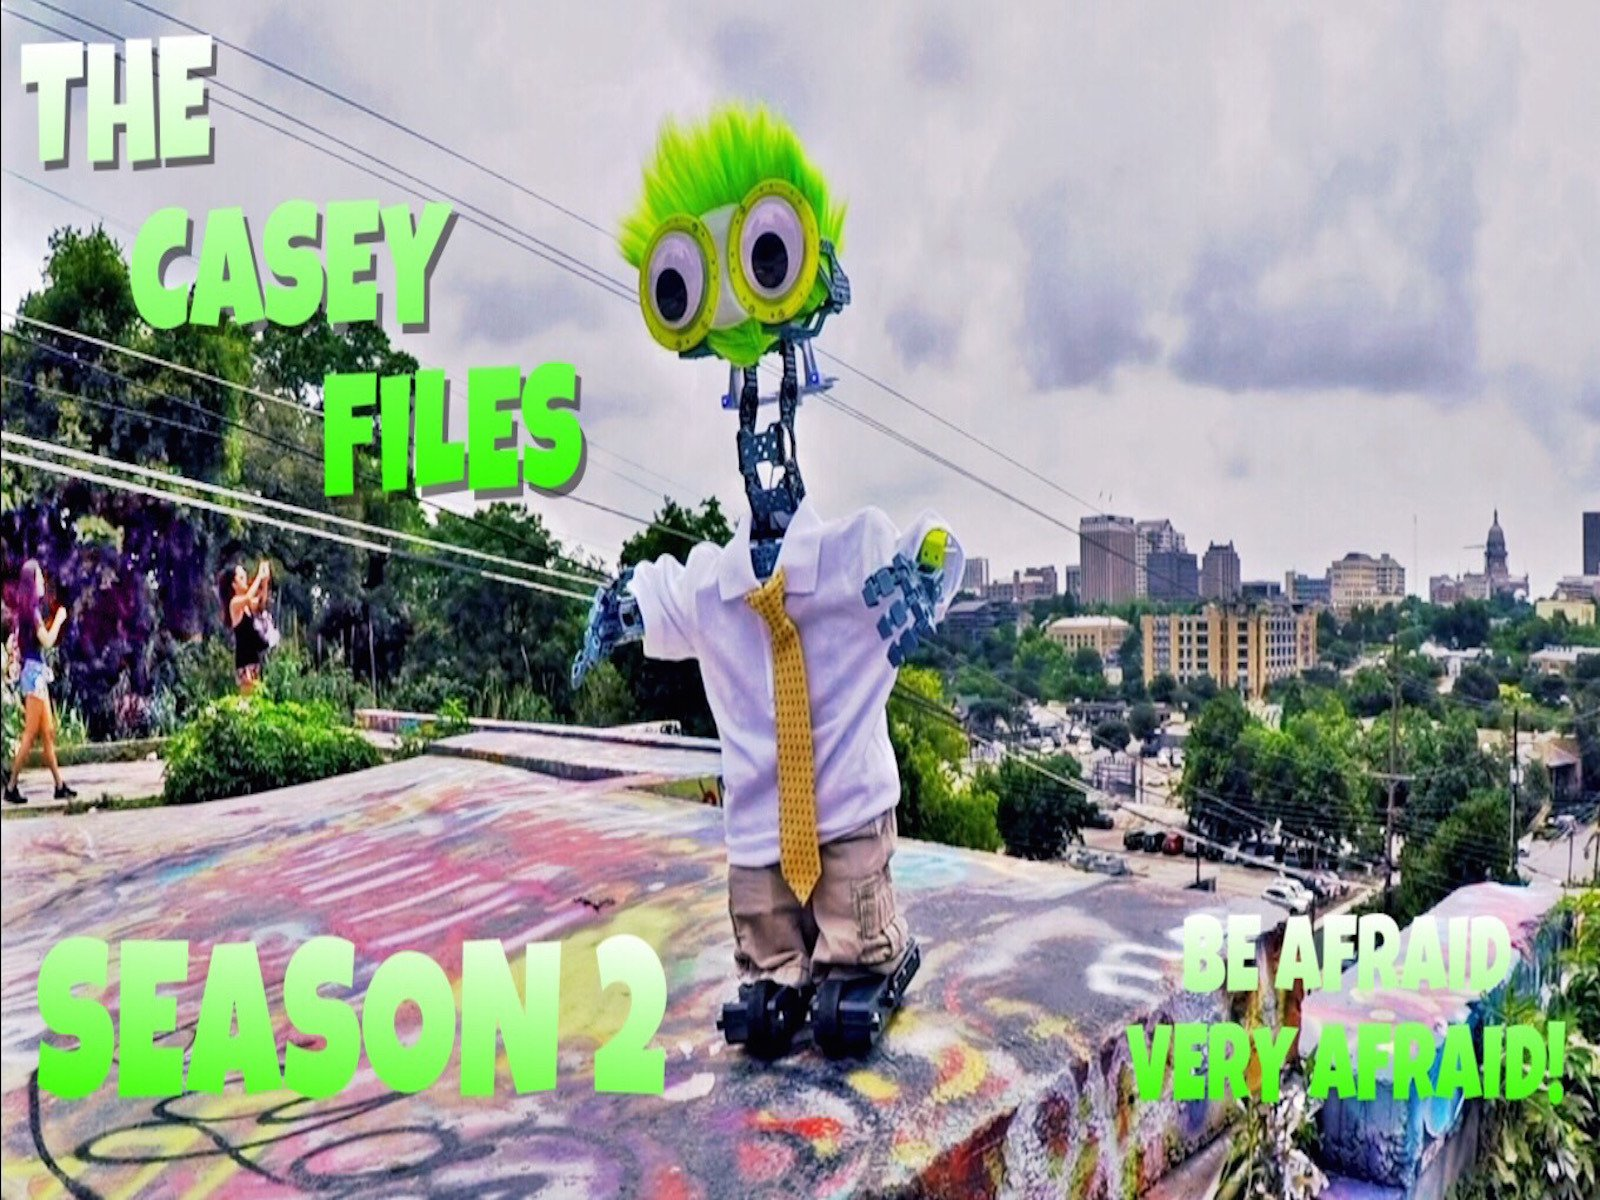 The Casey Files - Season 2